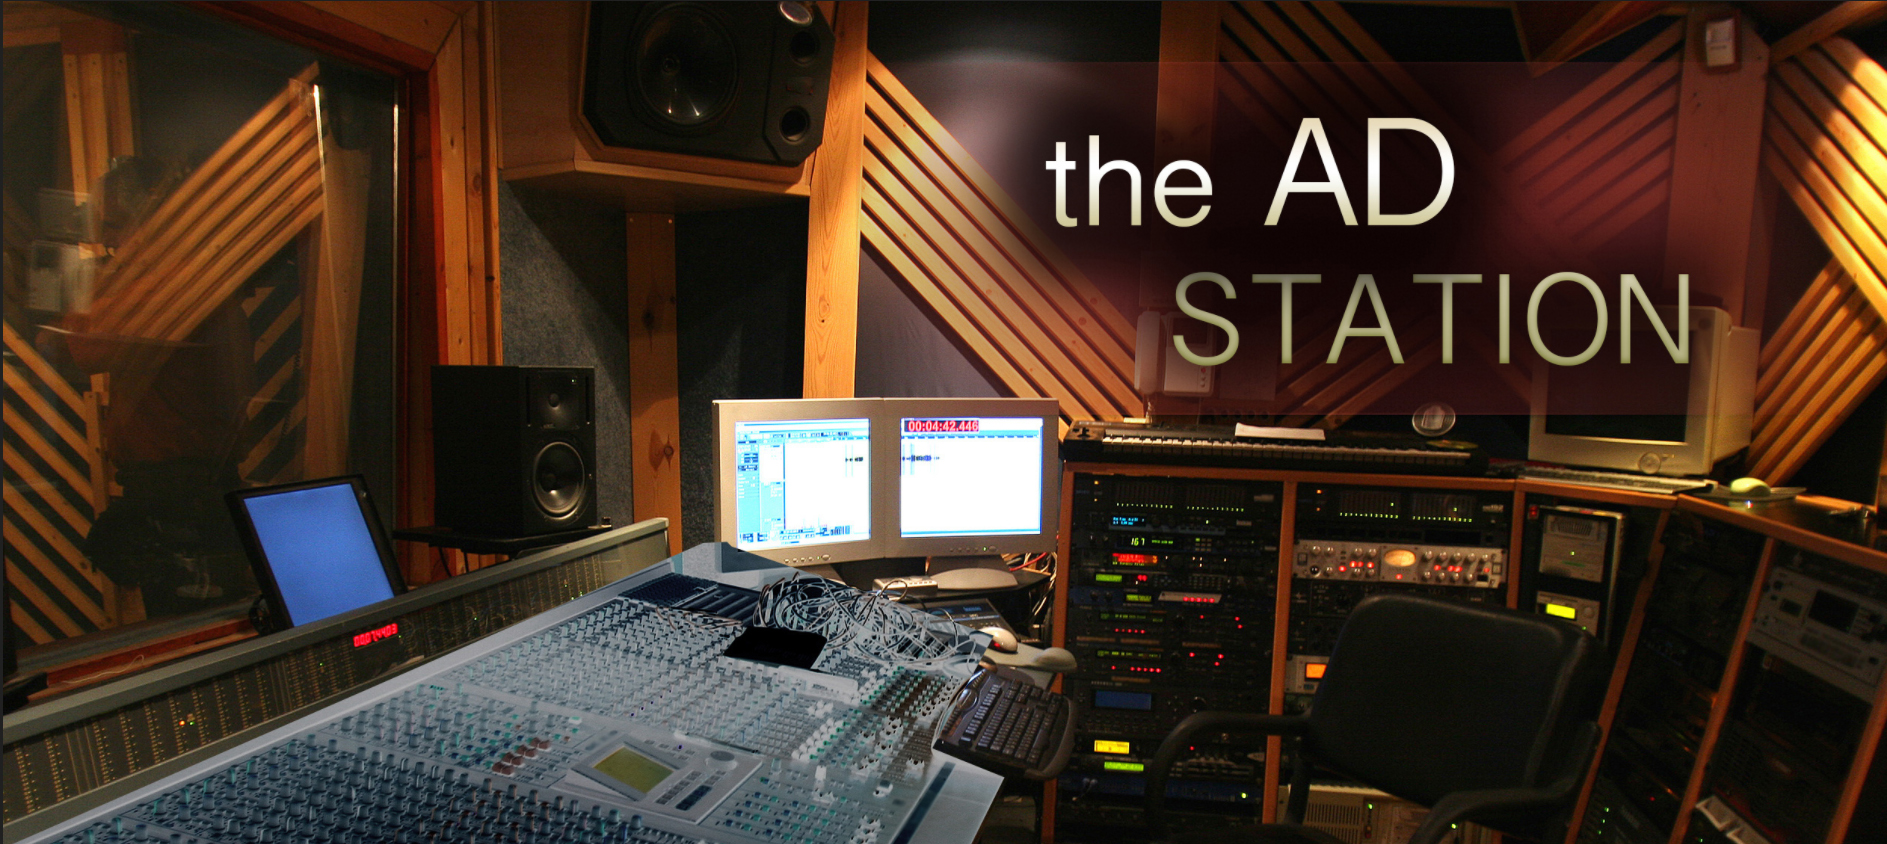 The Ad Station